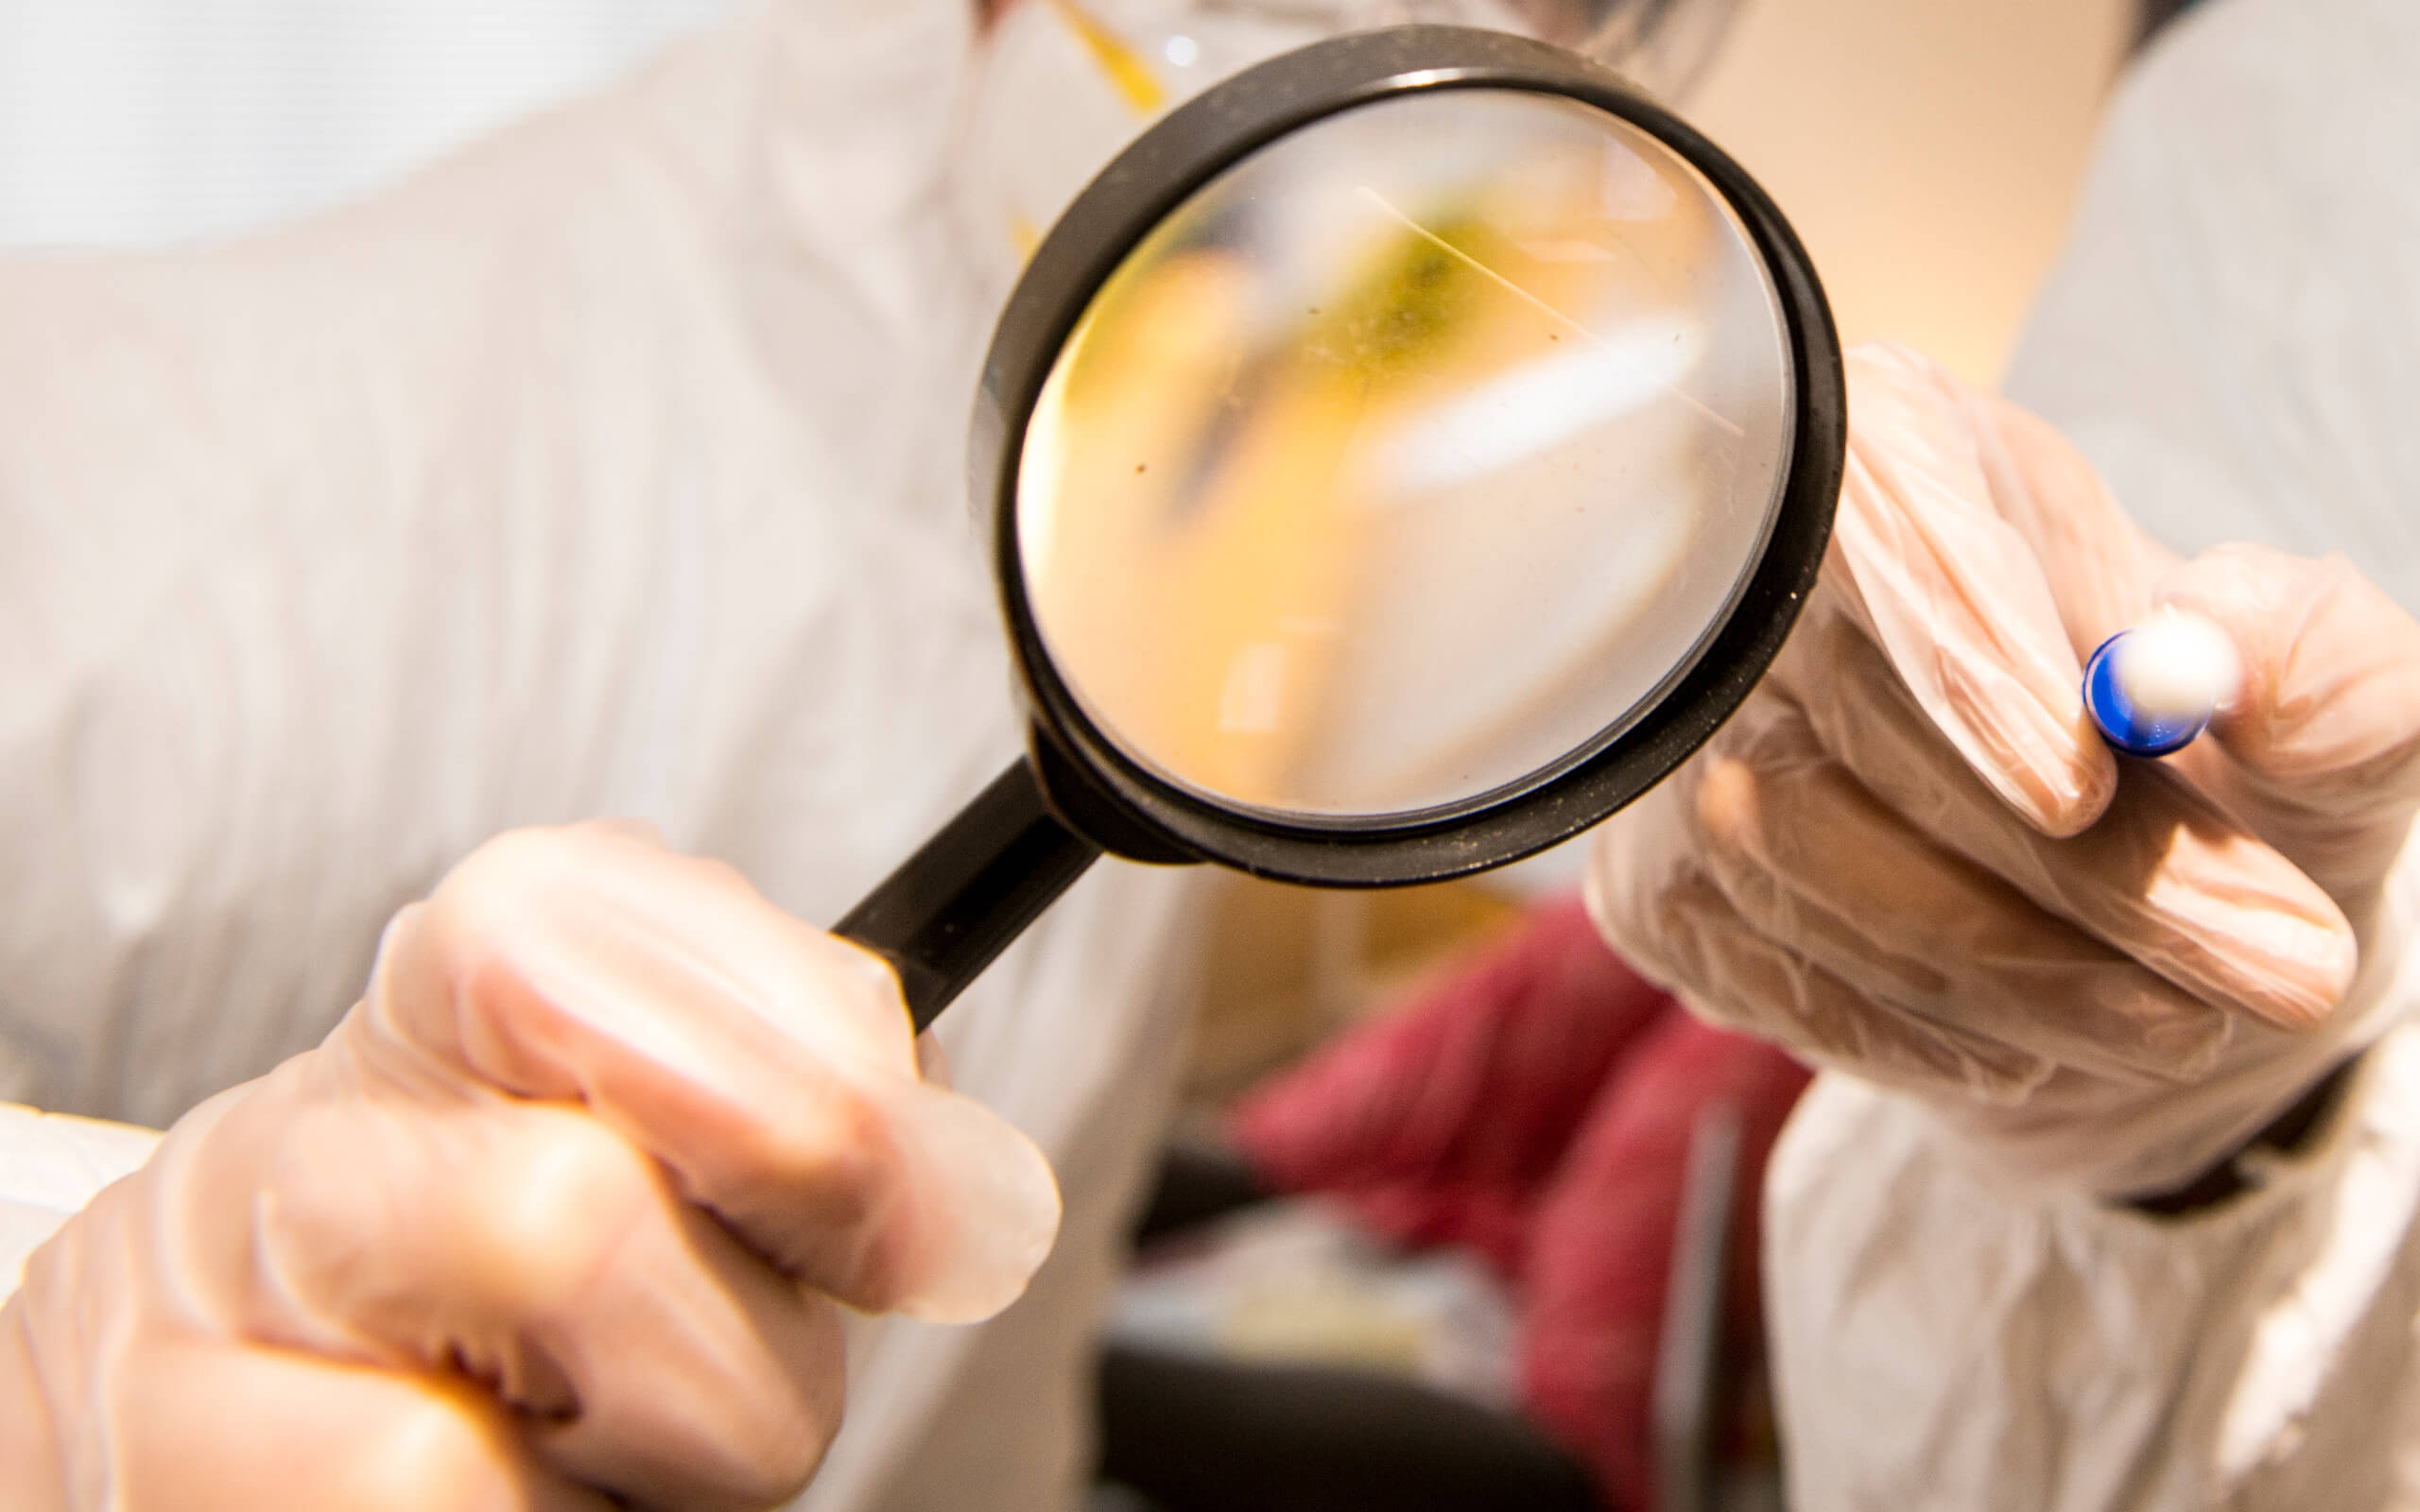 A forensic scientist using a magnifying glass